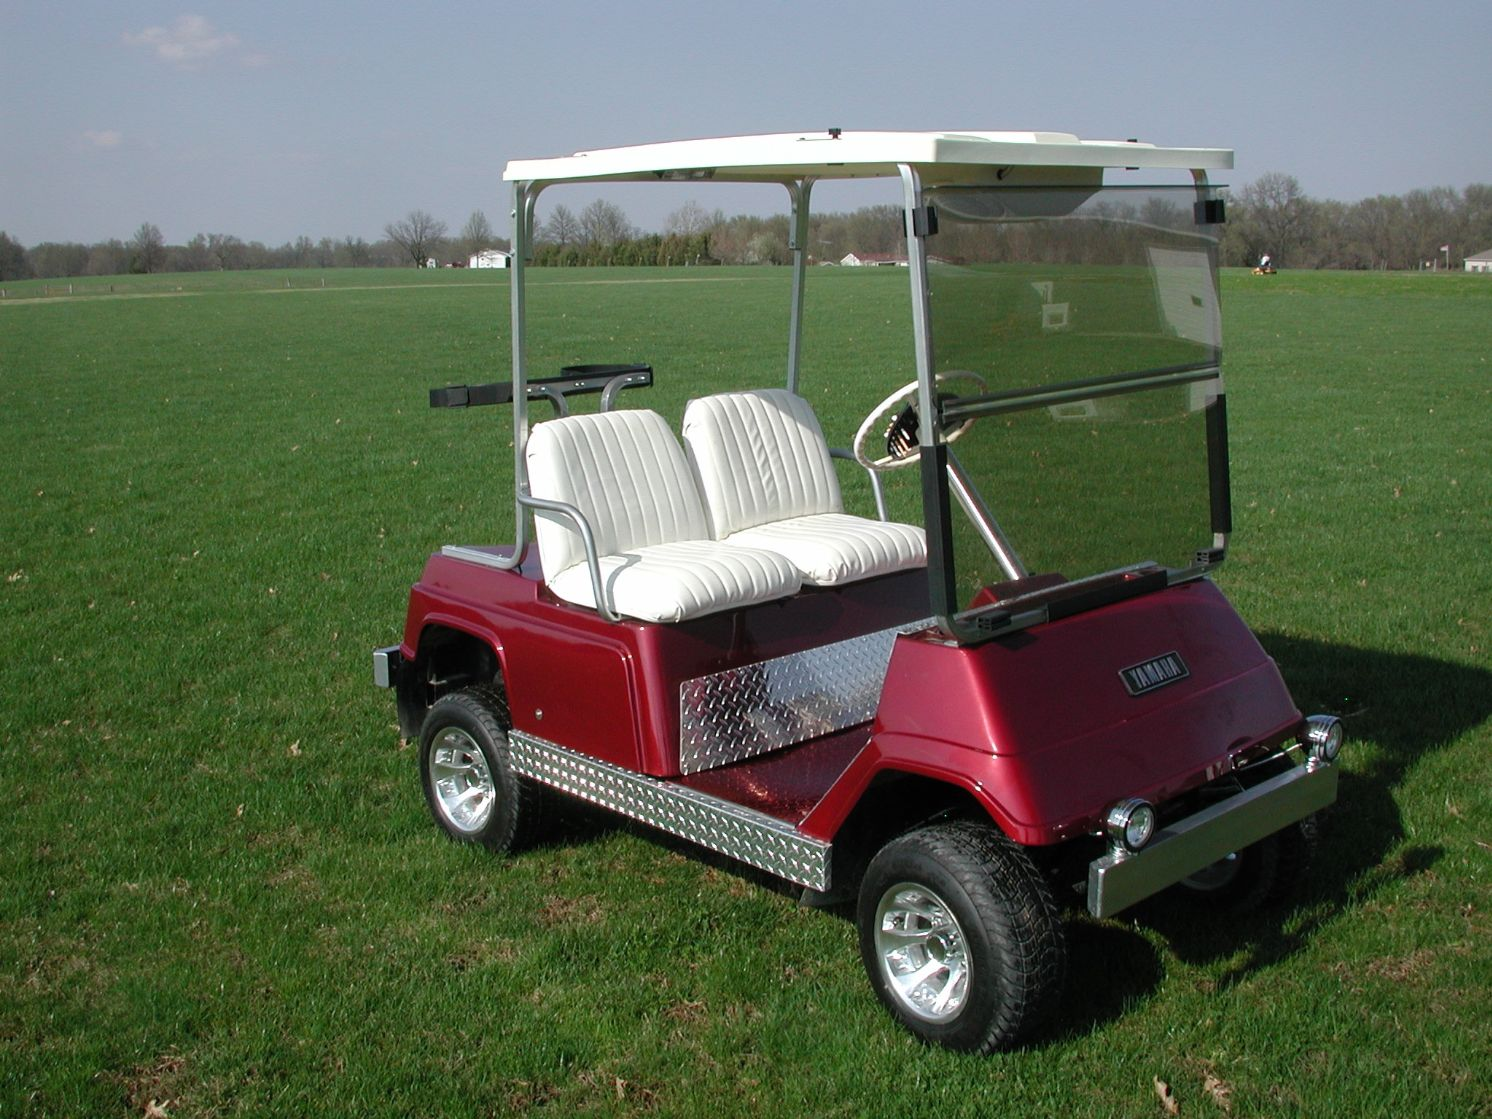 Golf Cart tops roofs canopies|soft convertible|solar Roof Golf Cart Light Kit on golf cart light kits, golf cart trunk kits, golf cart dashboard kits, golf cart horn kits, golf cart frame kits, golf cart building kits, golf cart dump bed kits, golf cart windshield kits, golf cart carpet kits, golf cart speedometer kits, golf cart garage kits, golf cart speaker kits, golf cart dash kits, golf cart seat belt kits, golf cart canopy kits,